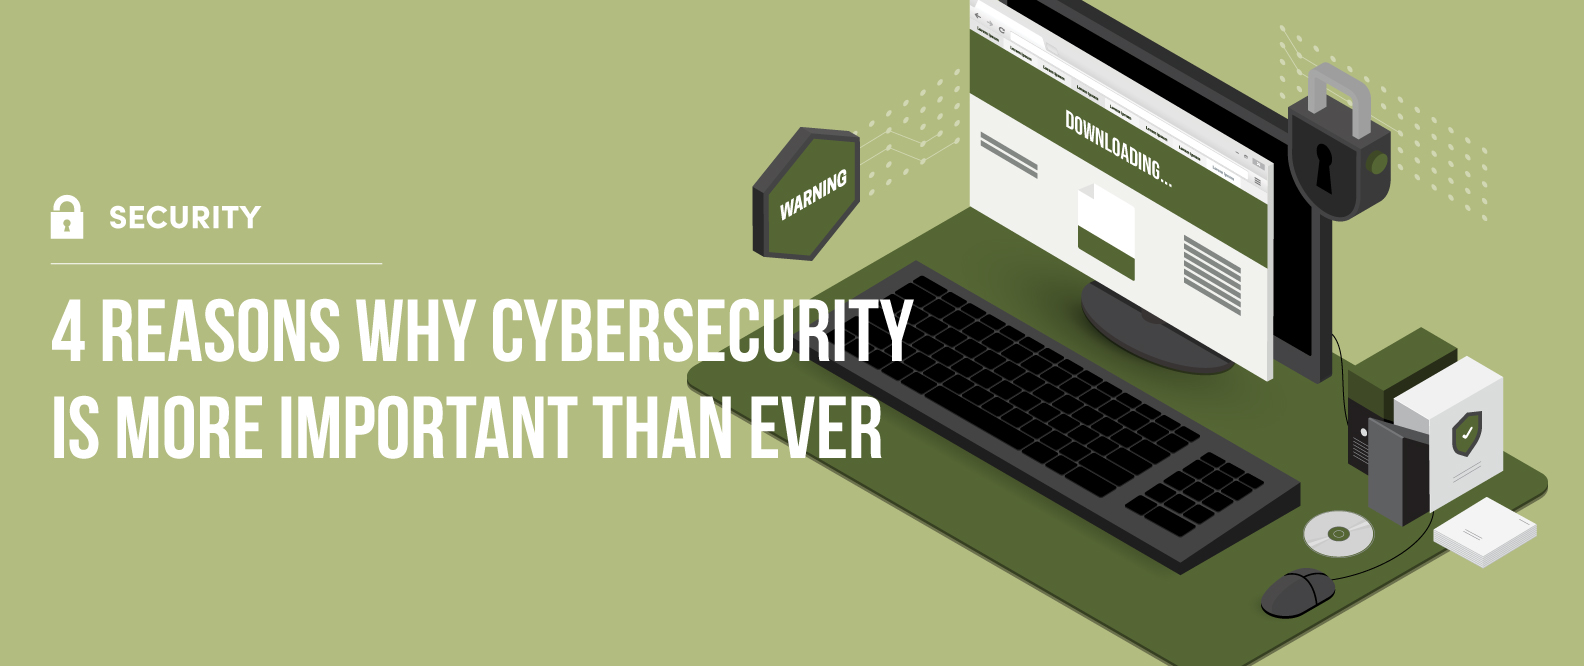 4-Reasons-Why-Cybersecurity-is-More-Important-than-Ever.jpg